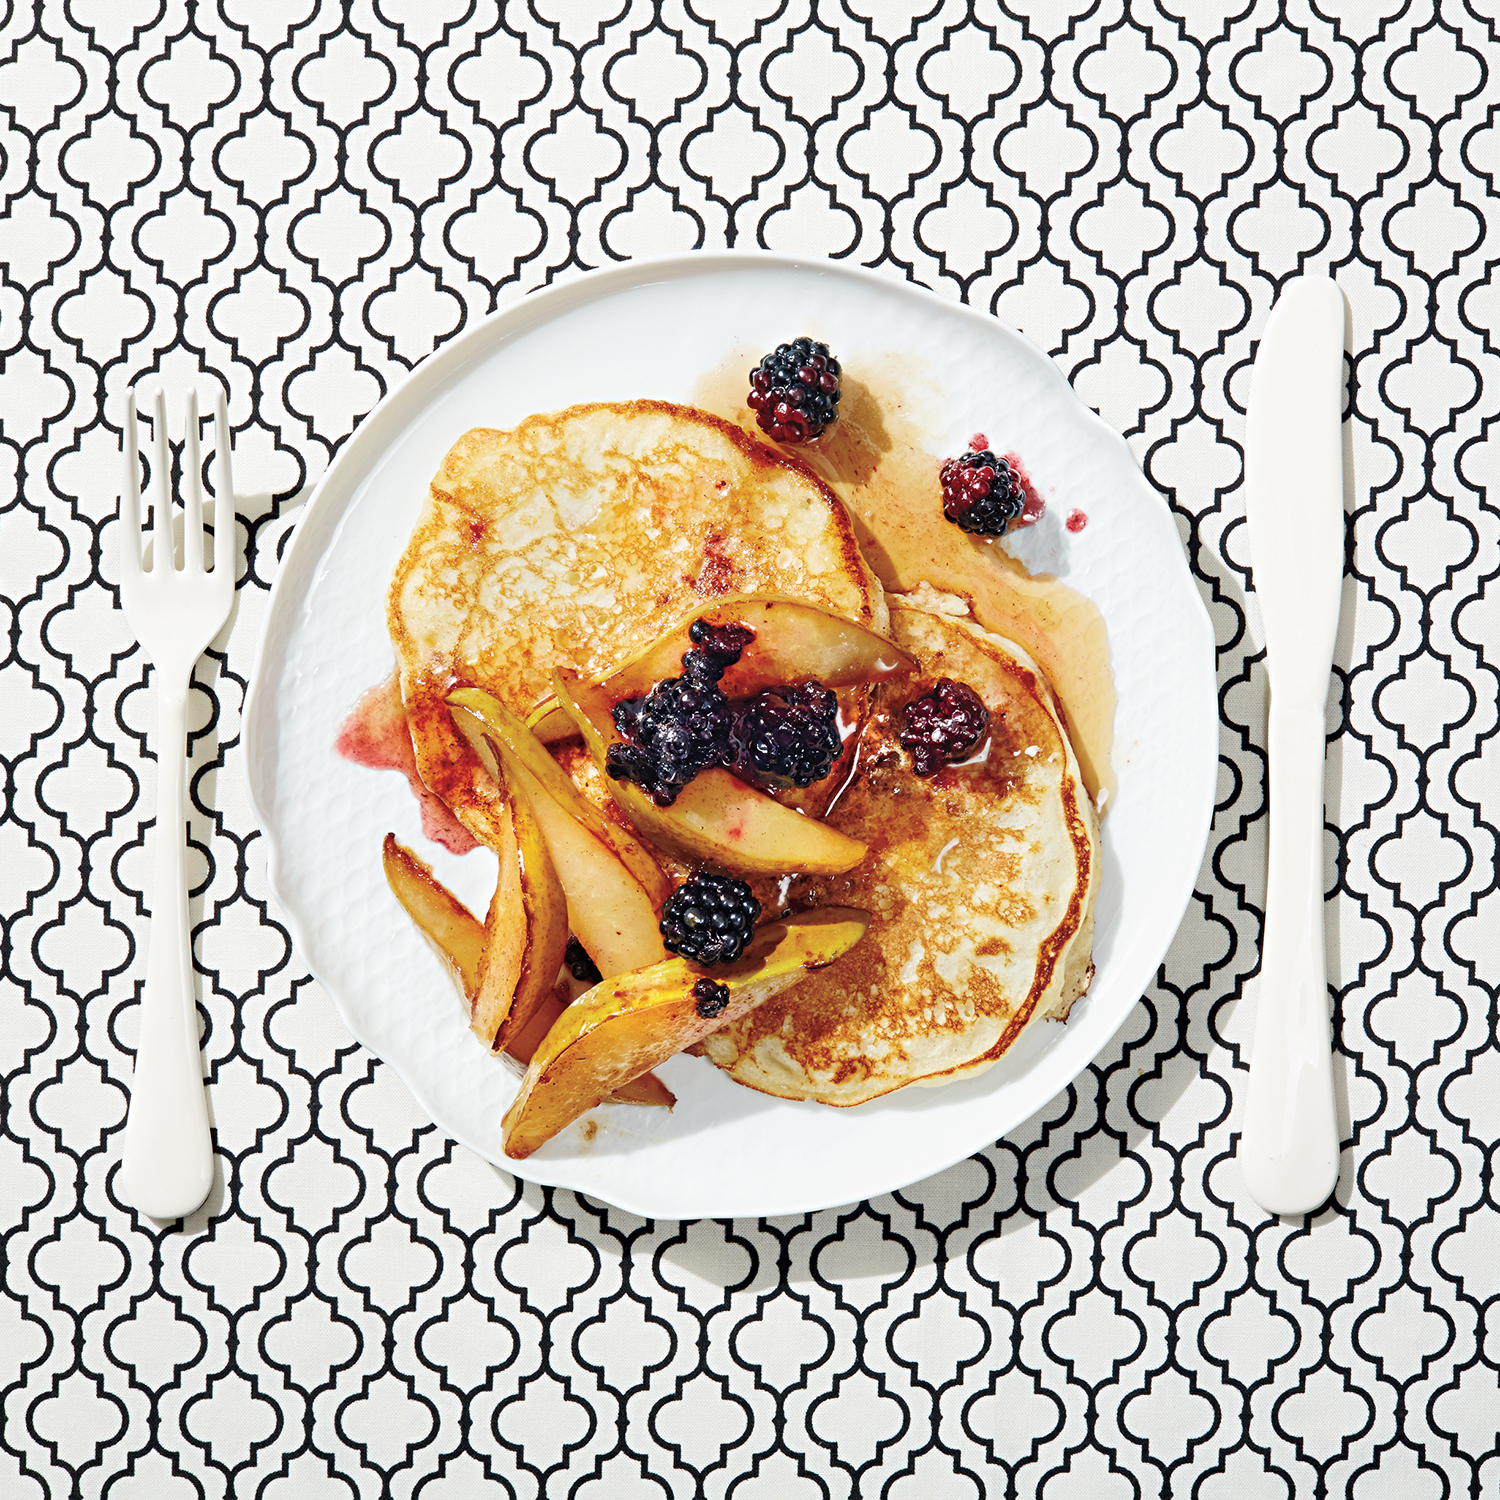 14 instagram worthy breakfasts that taste as good as they look The Ultimate Muffin buttermilk pancakes with pan roasted pears and blackberries